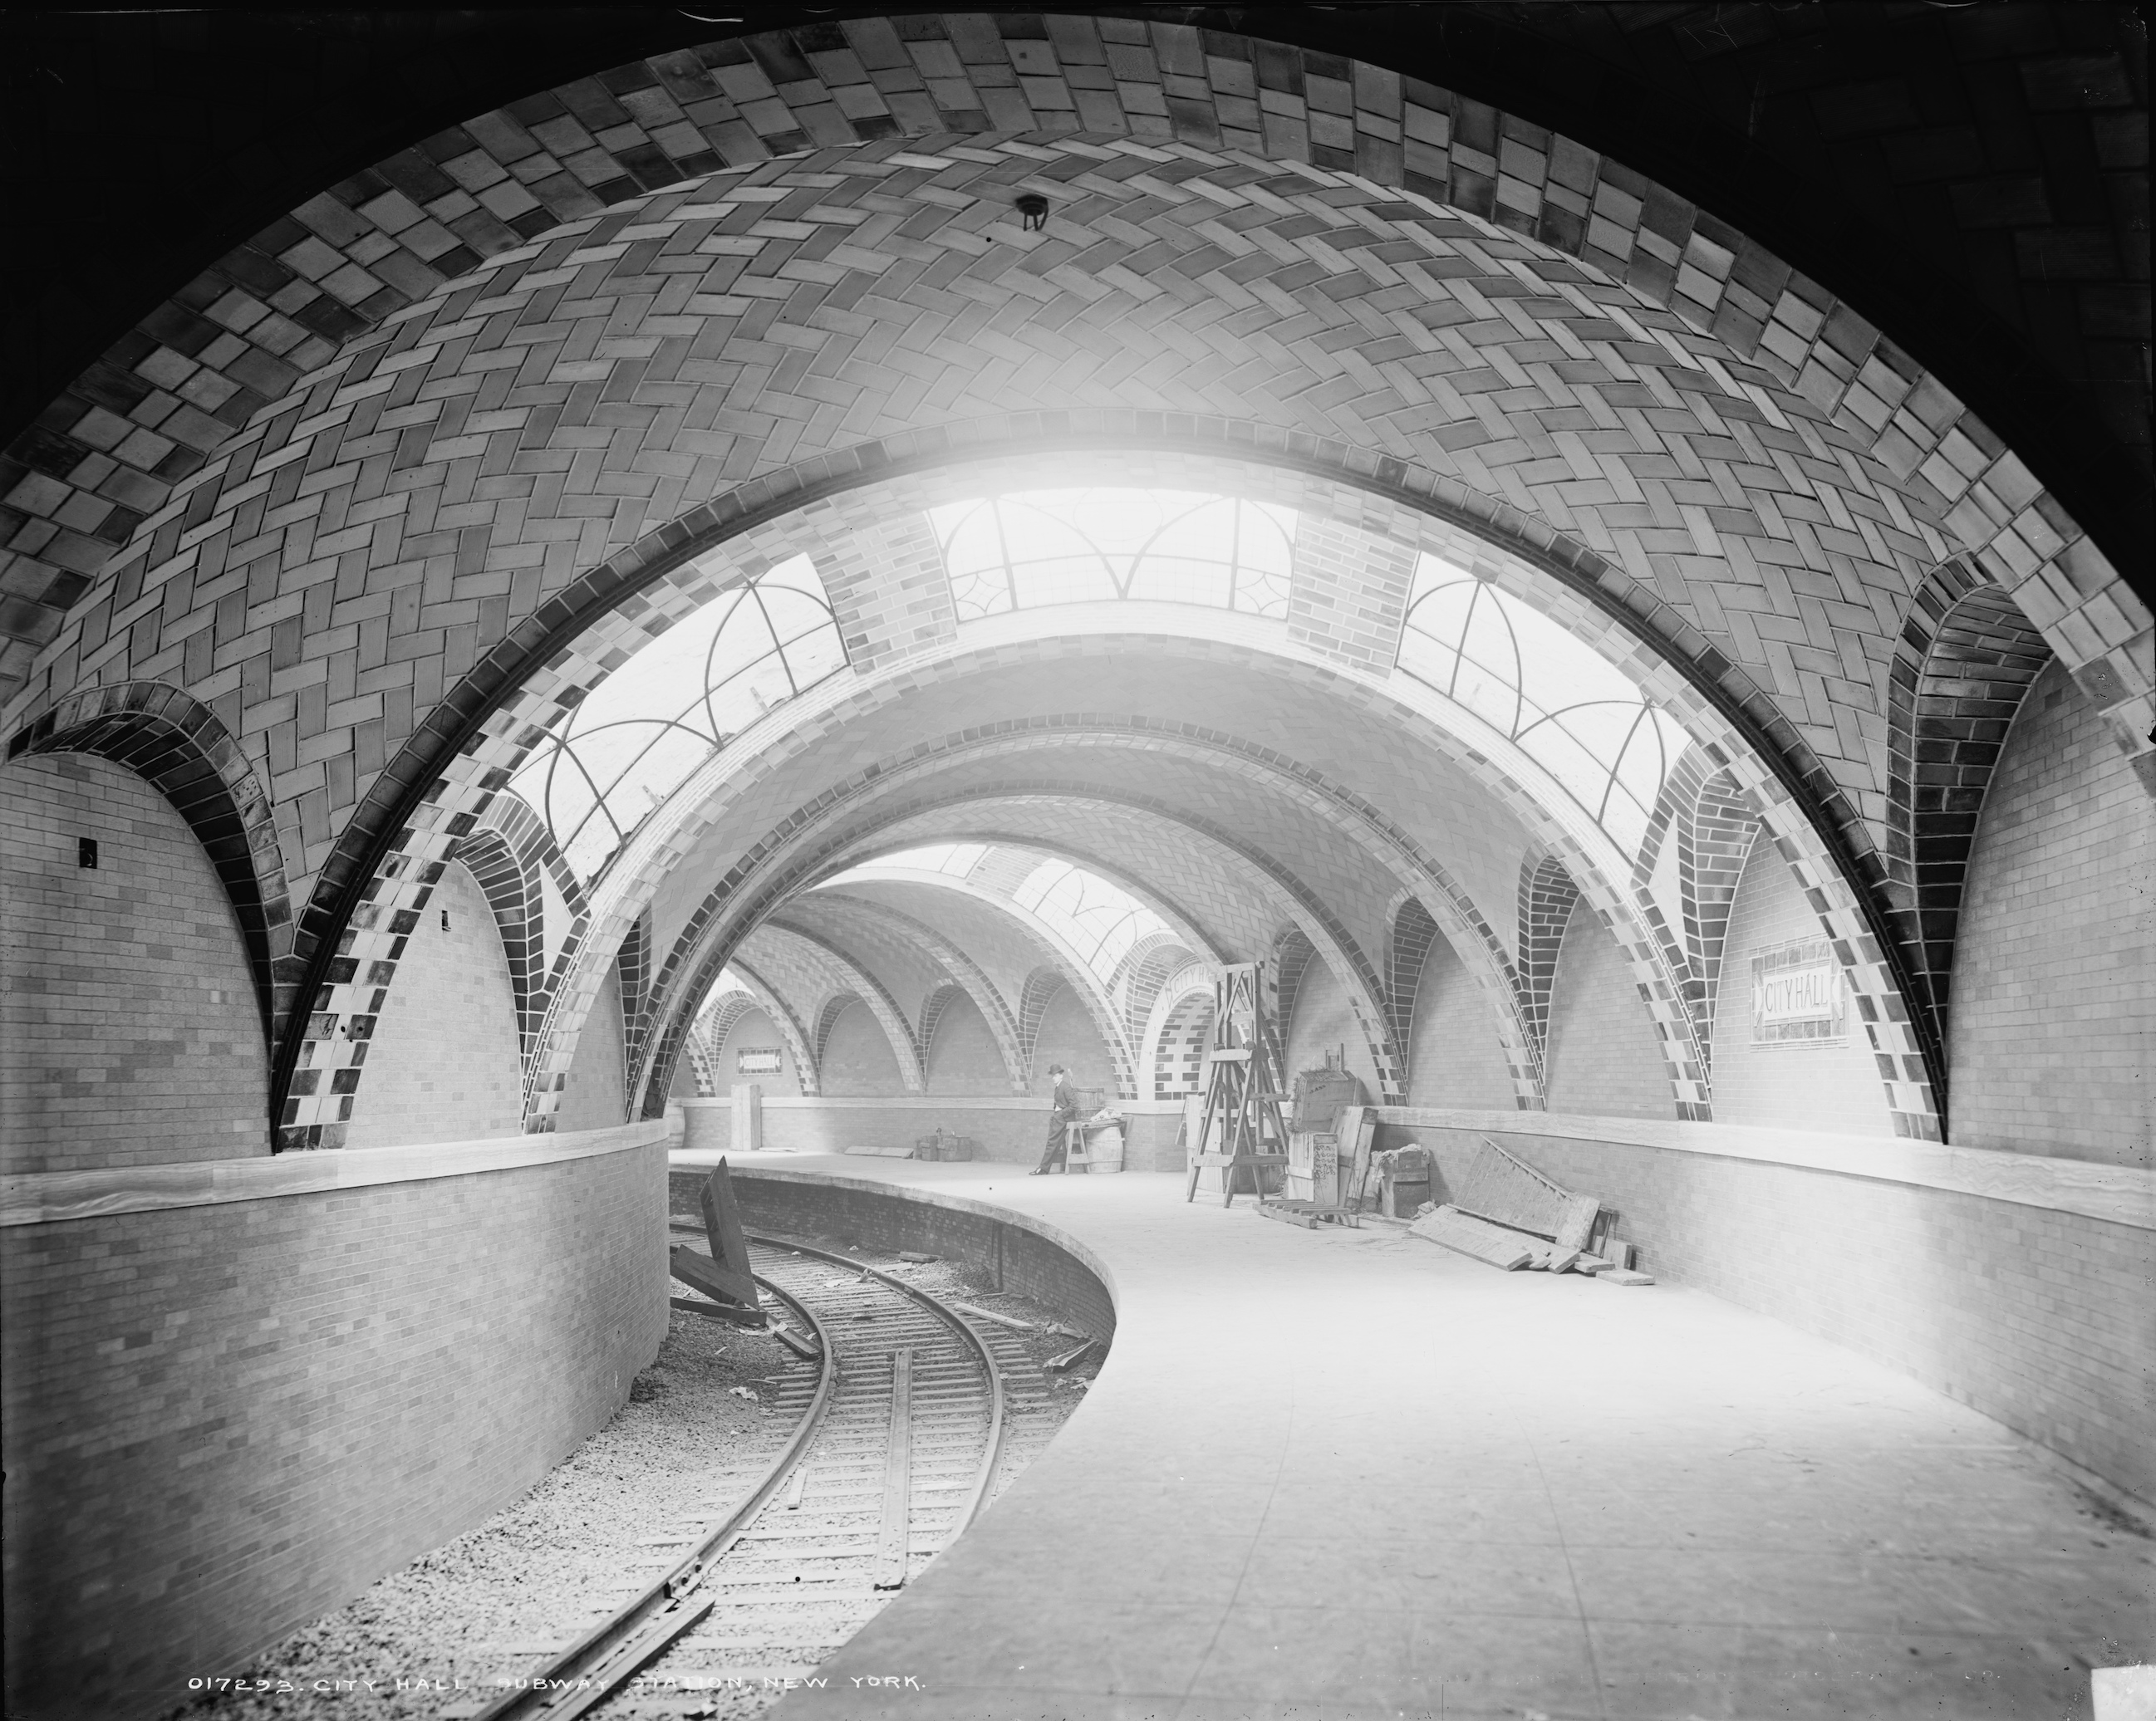 city_hall_subway_station